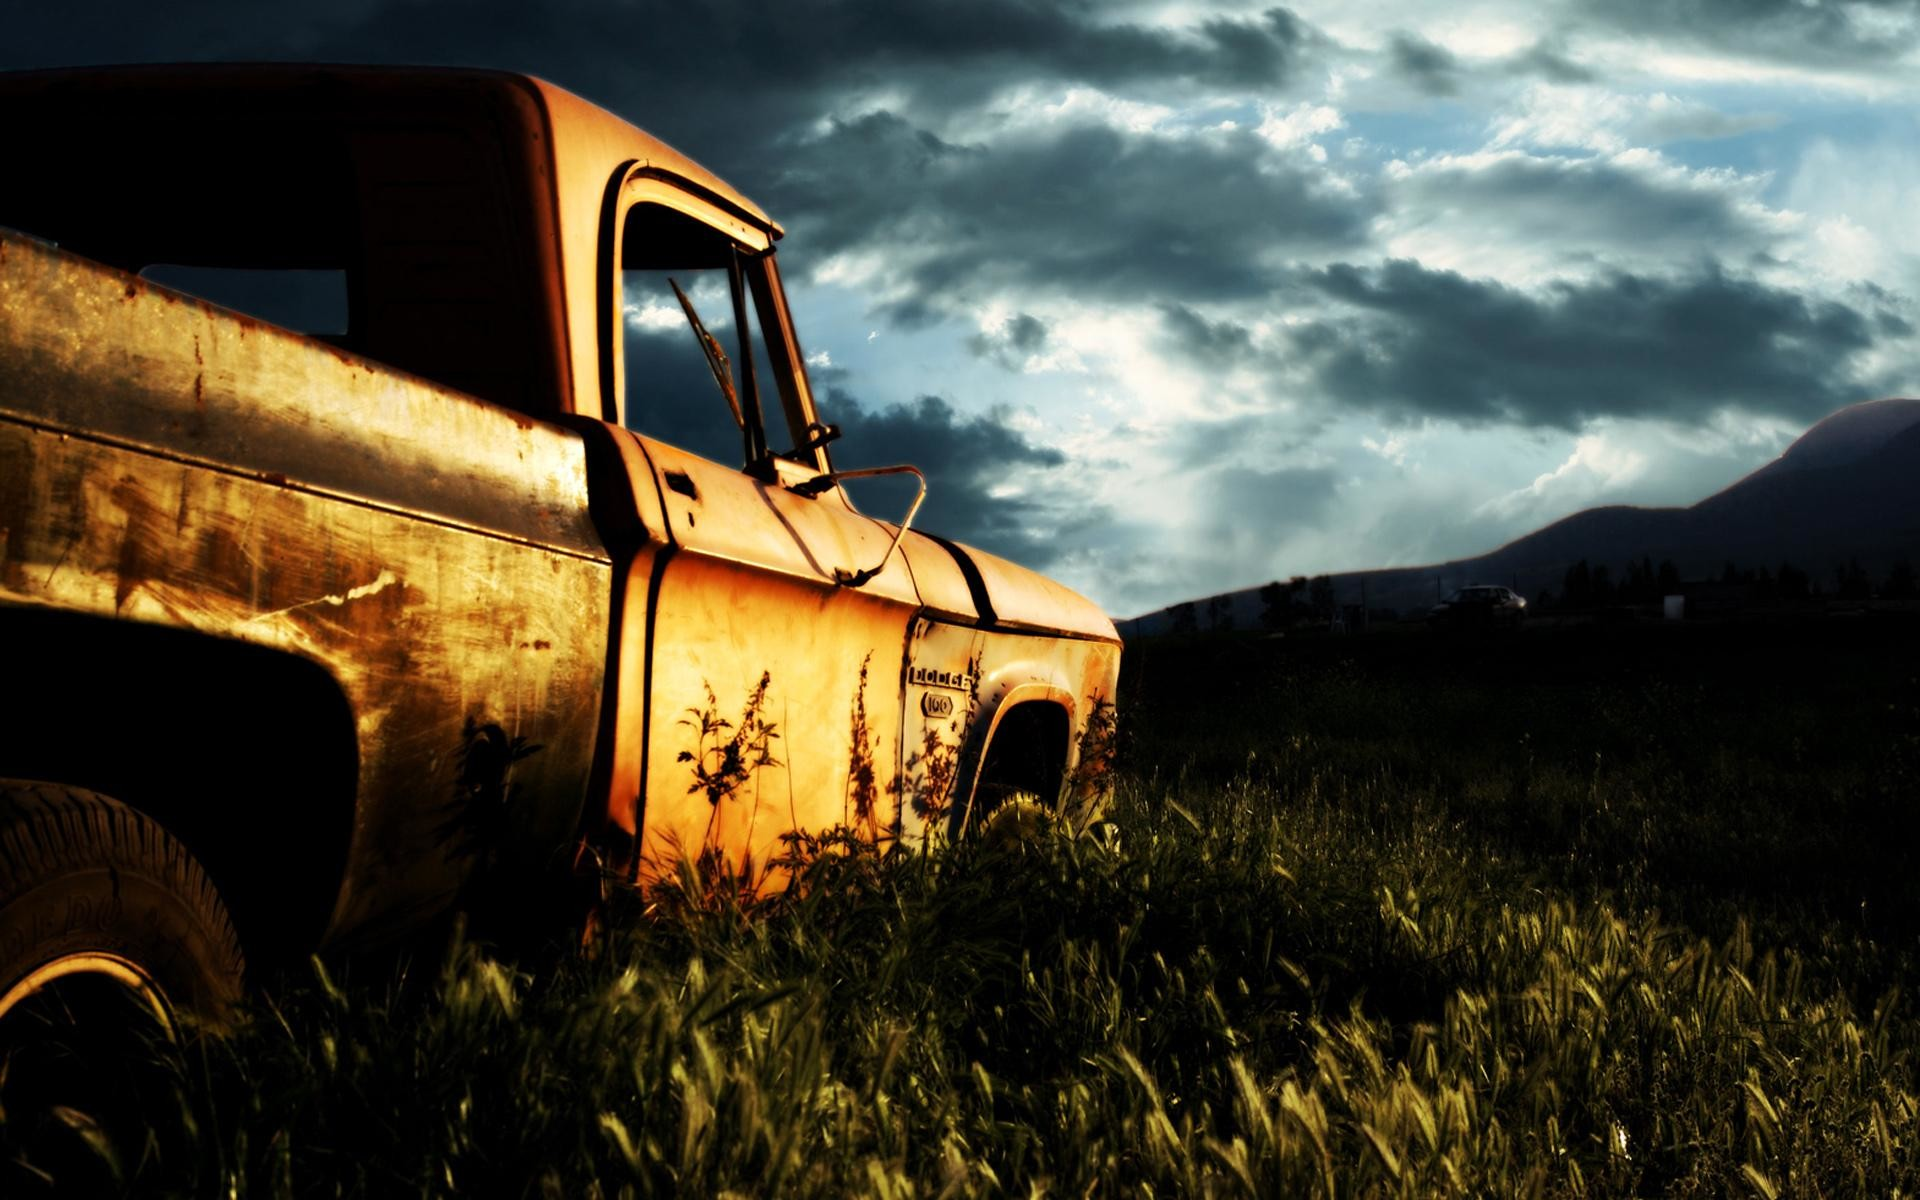 Res: 1920x1200,  wallpaper.wiki-Rusty-Old-Car-Cool-Backgrounds-Wallpapers-PIC .